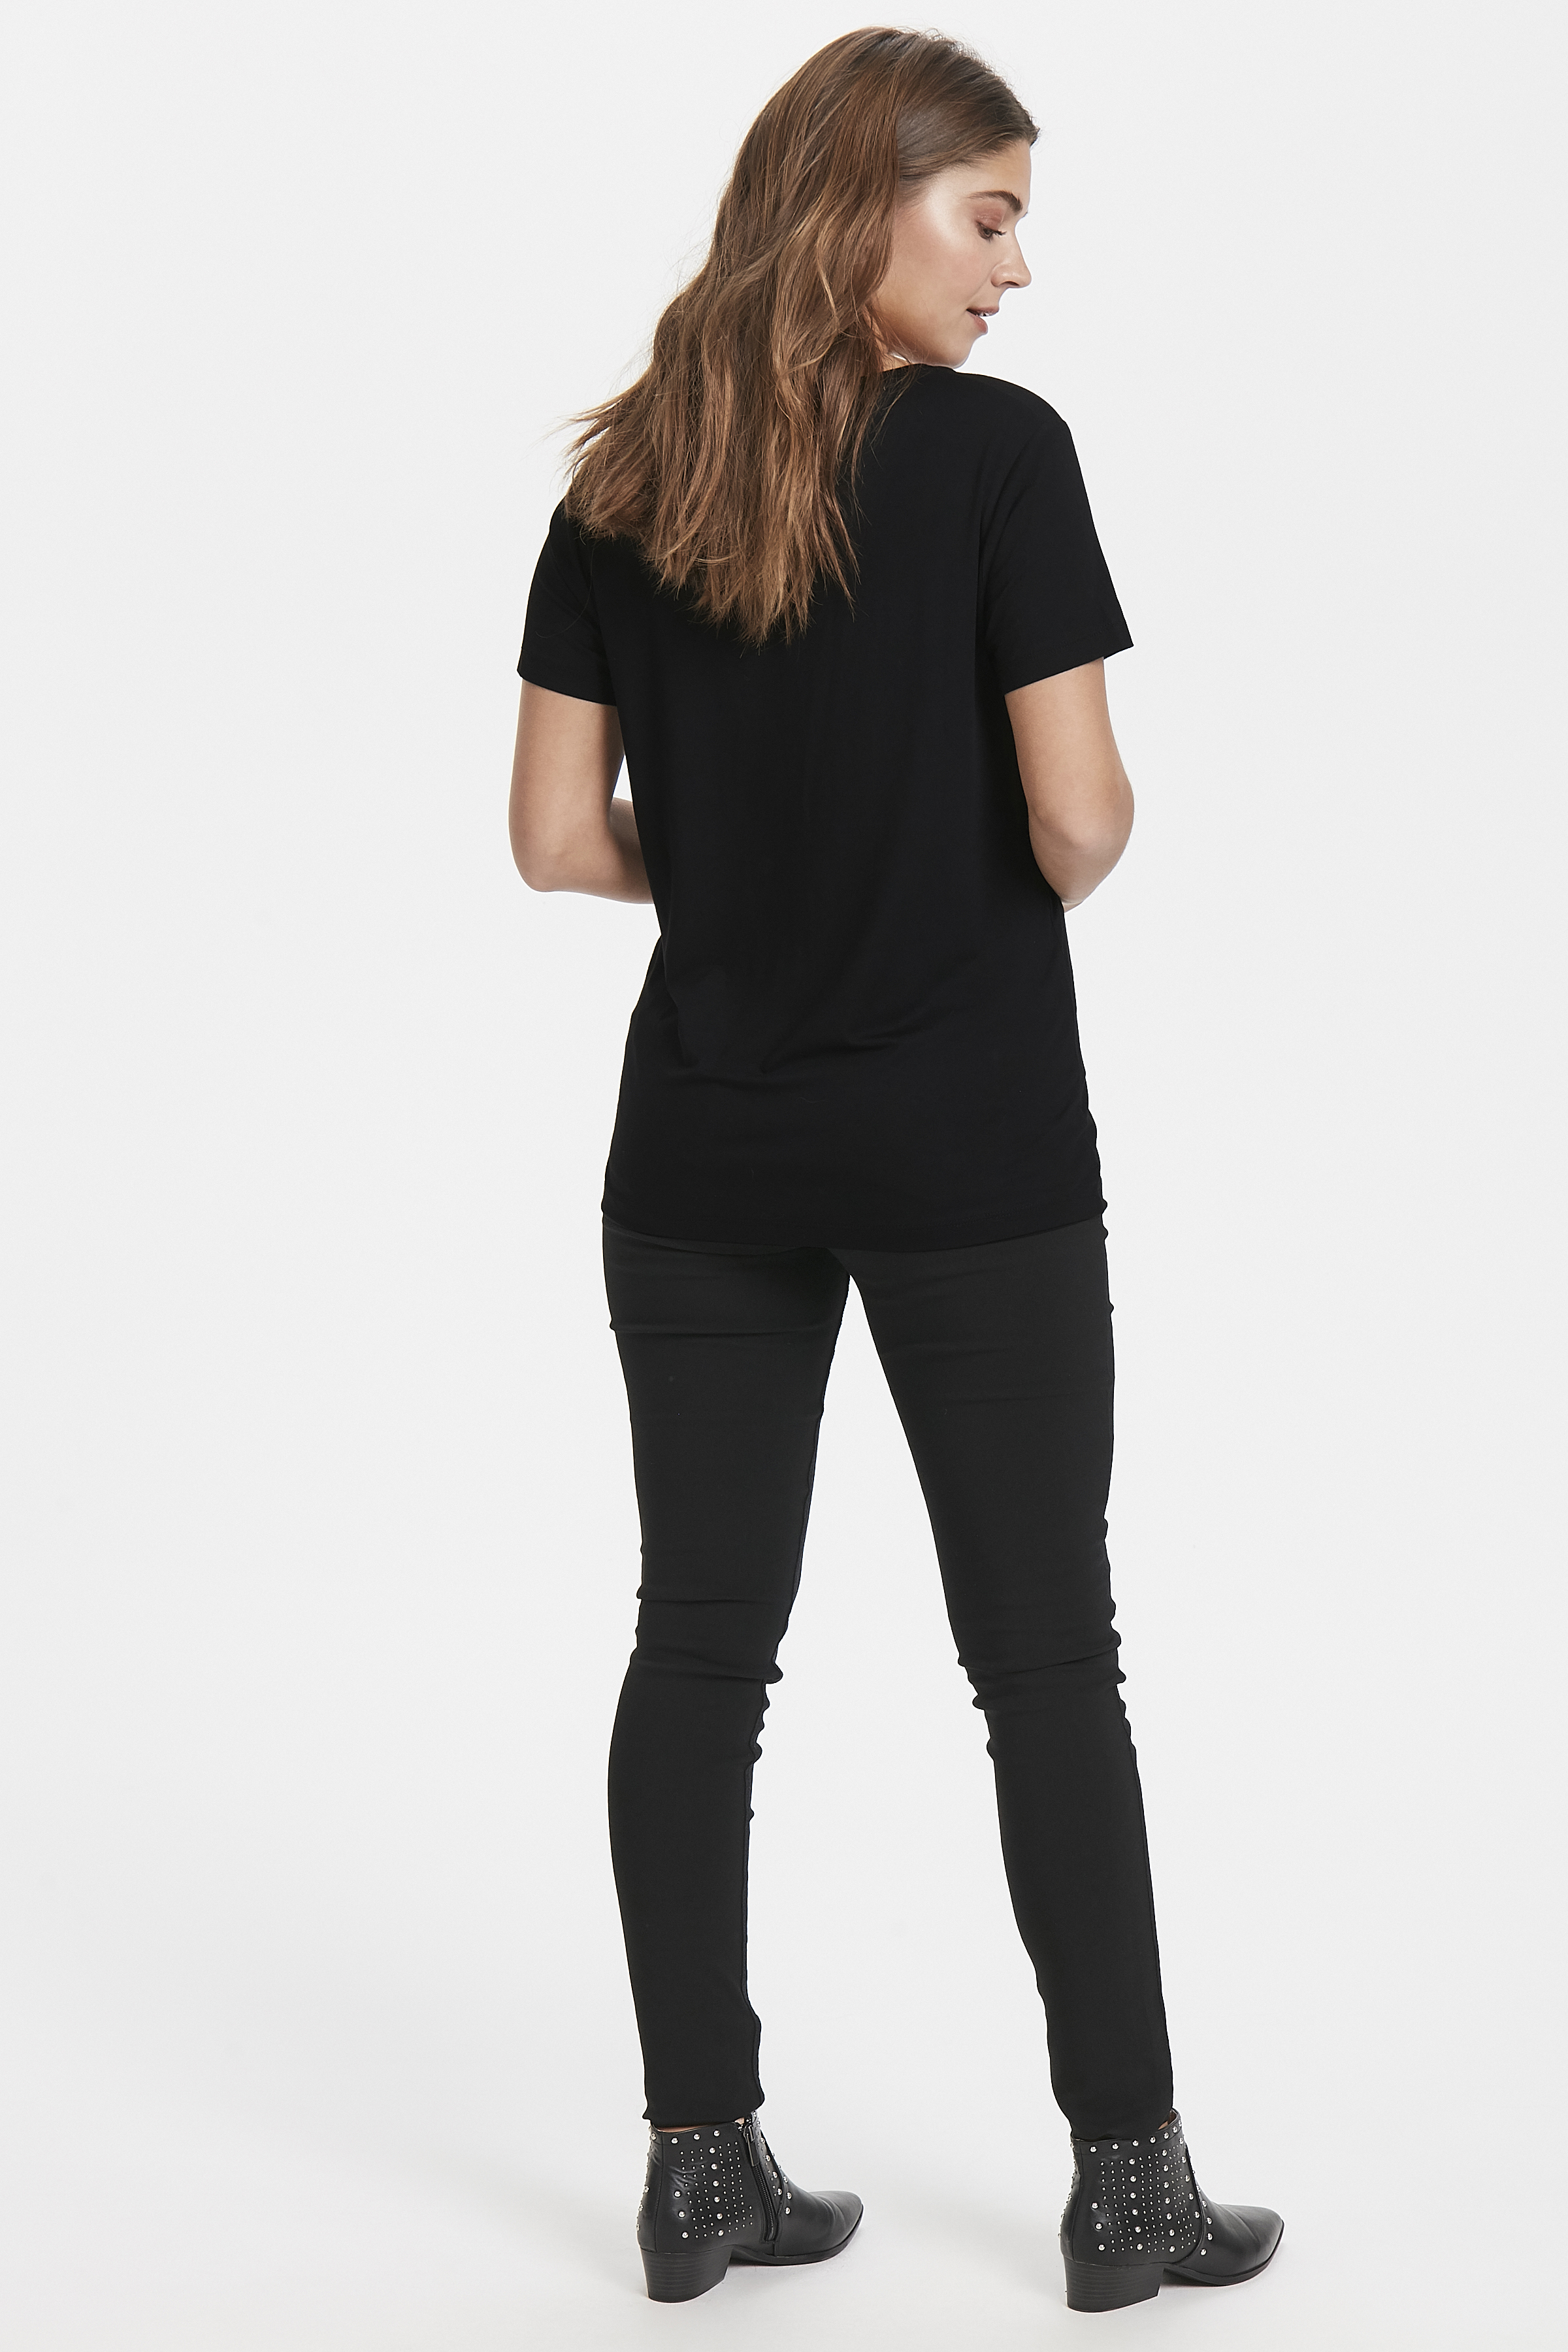 Black combi 1 T-shirt from b.young – Buy Black combi 1 T-shirt from size XS-XL here